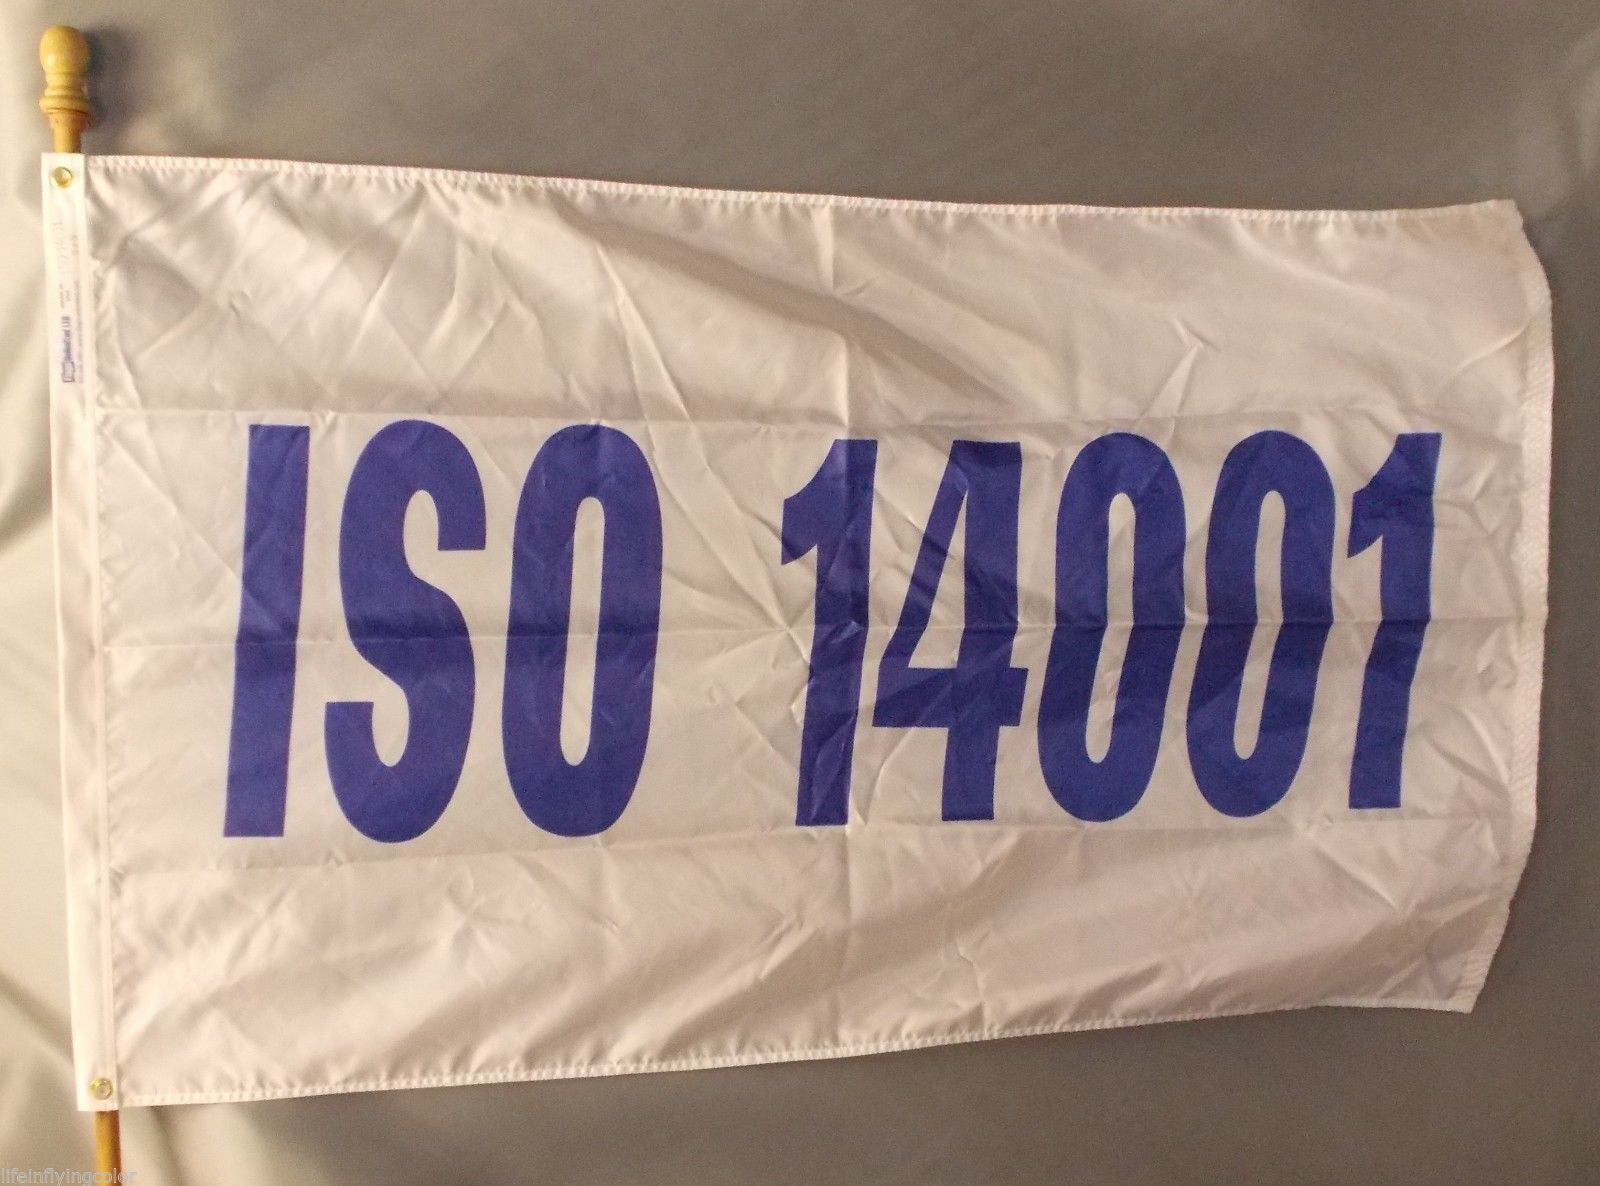 ISO 14001 3X5' NYLON FLAG NEW WHITE WITH BLUE LETTERS ISO 14001